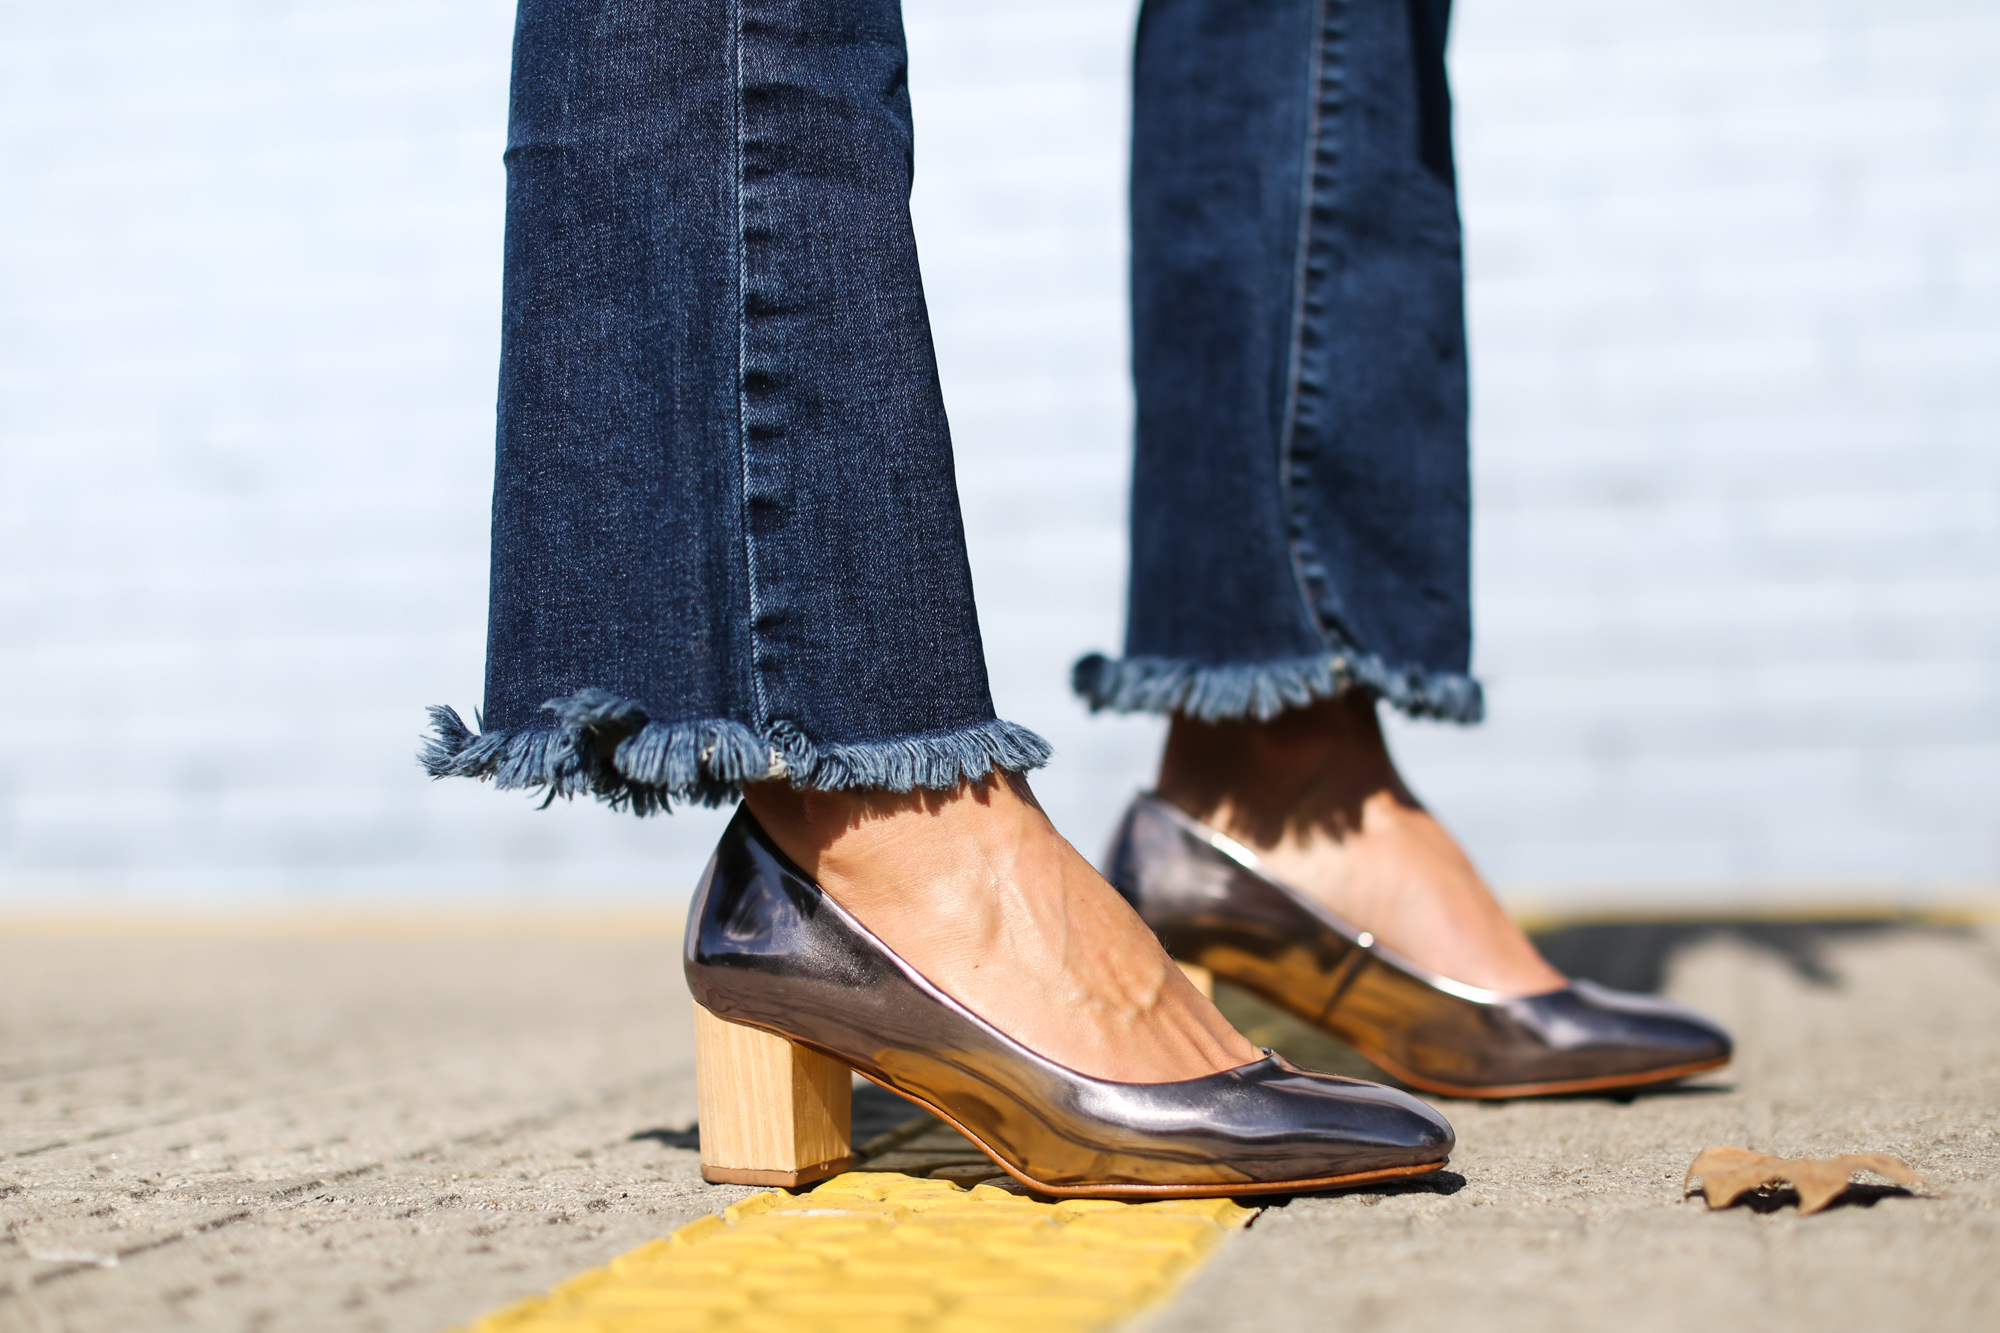 Clochet_Streetstyle_cropped_flare_jeans_isabel_marant_silk_shirt_granny_shoes-12